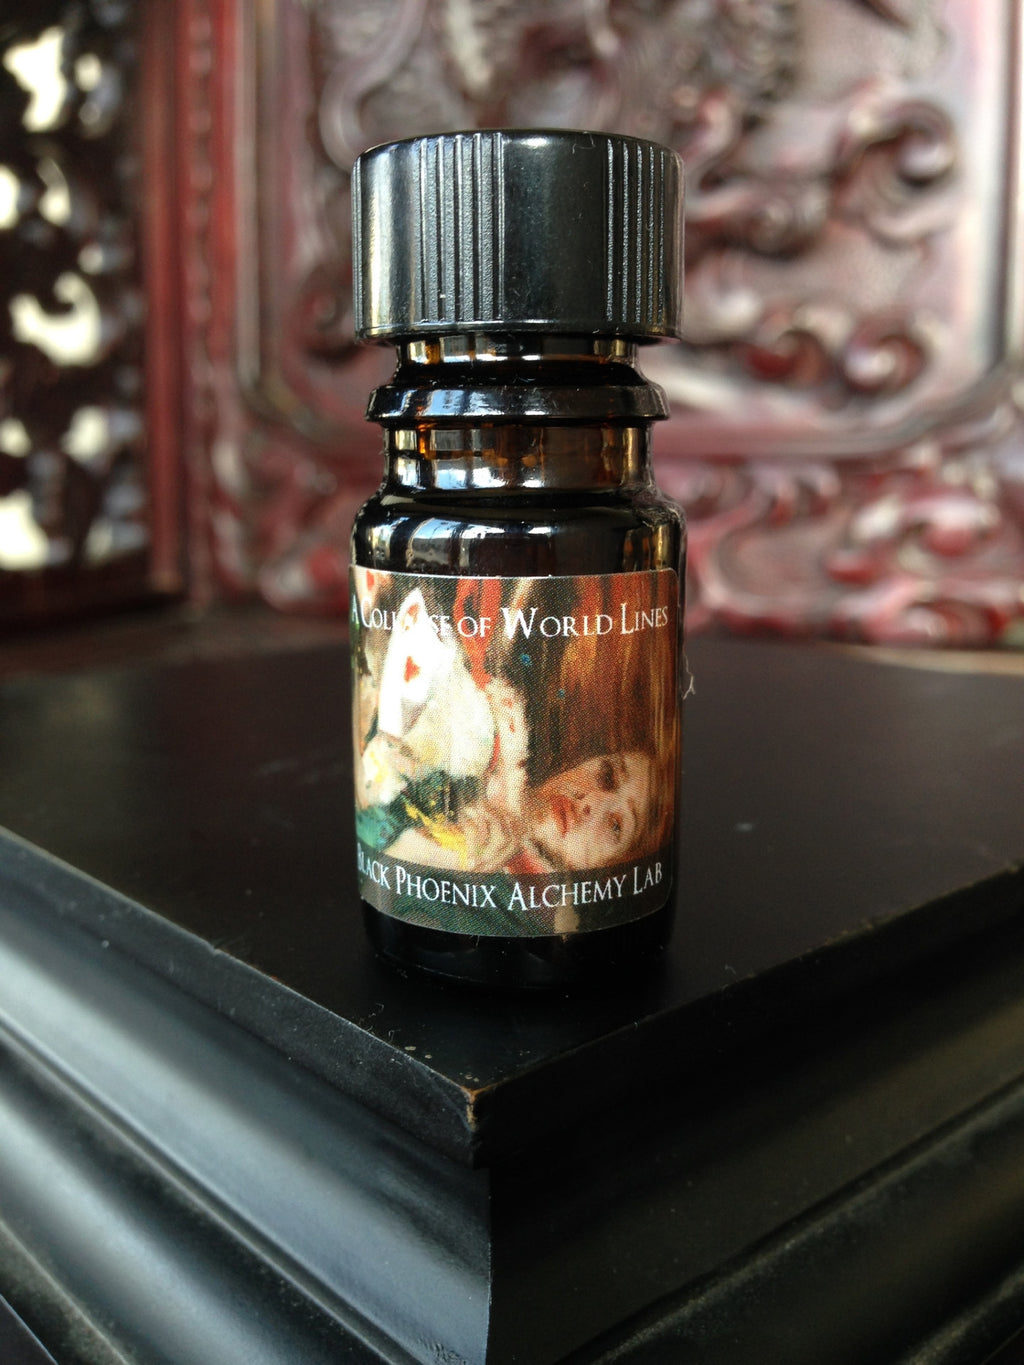 """A Collapse of World Lines"" LIMITED EDITION scented oil from Black Phoenix Alchemy Lab"